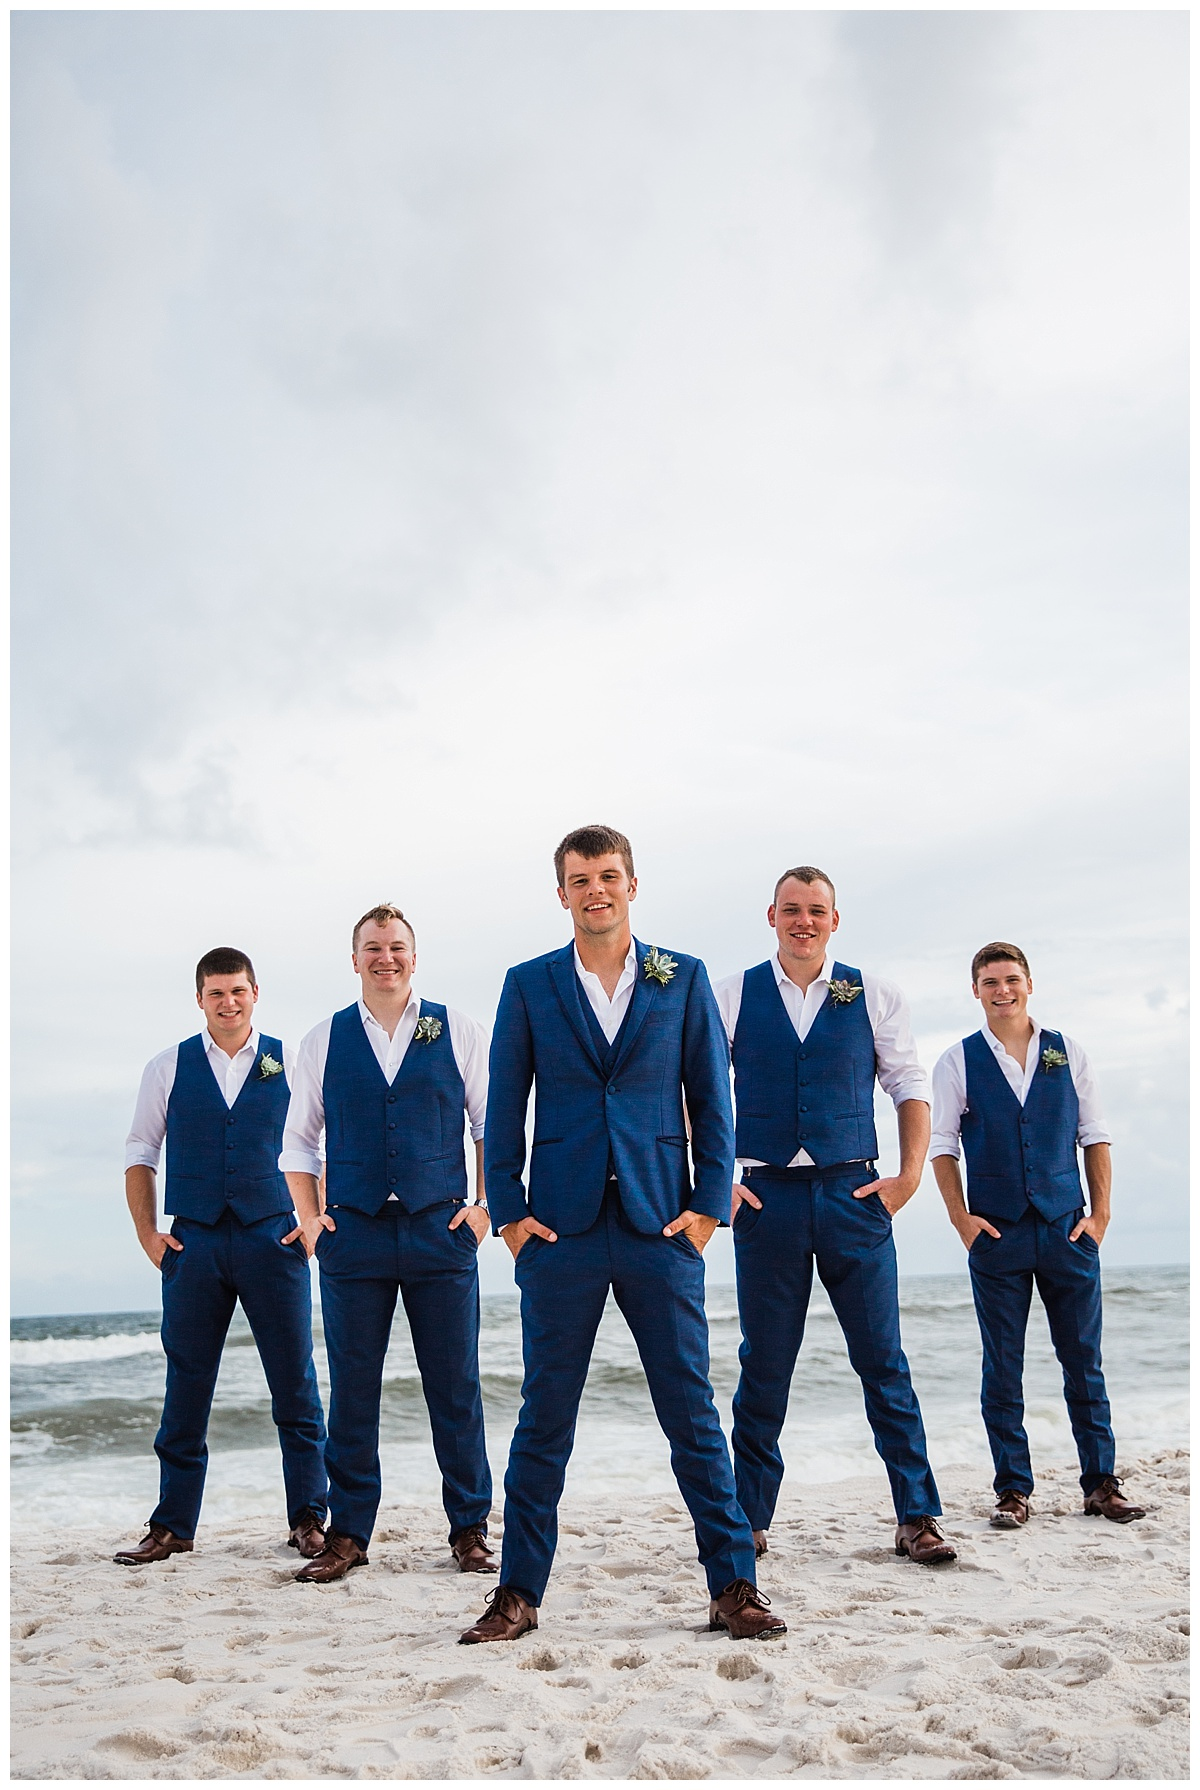 Groomsmen Pictures Ideas